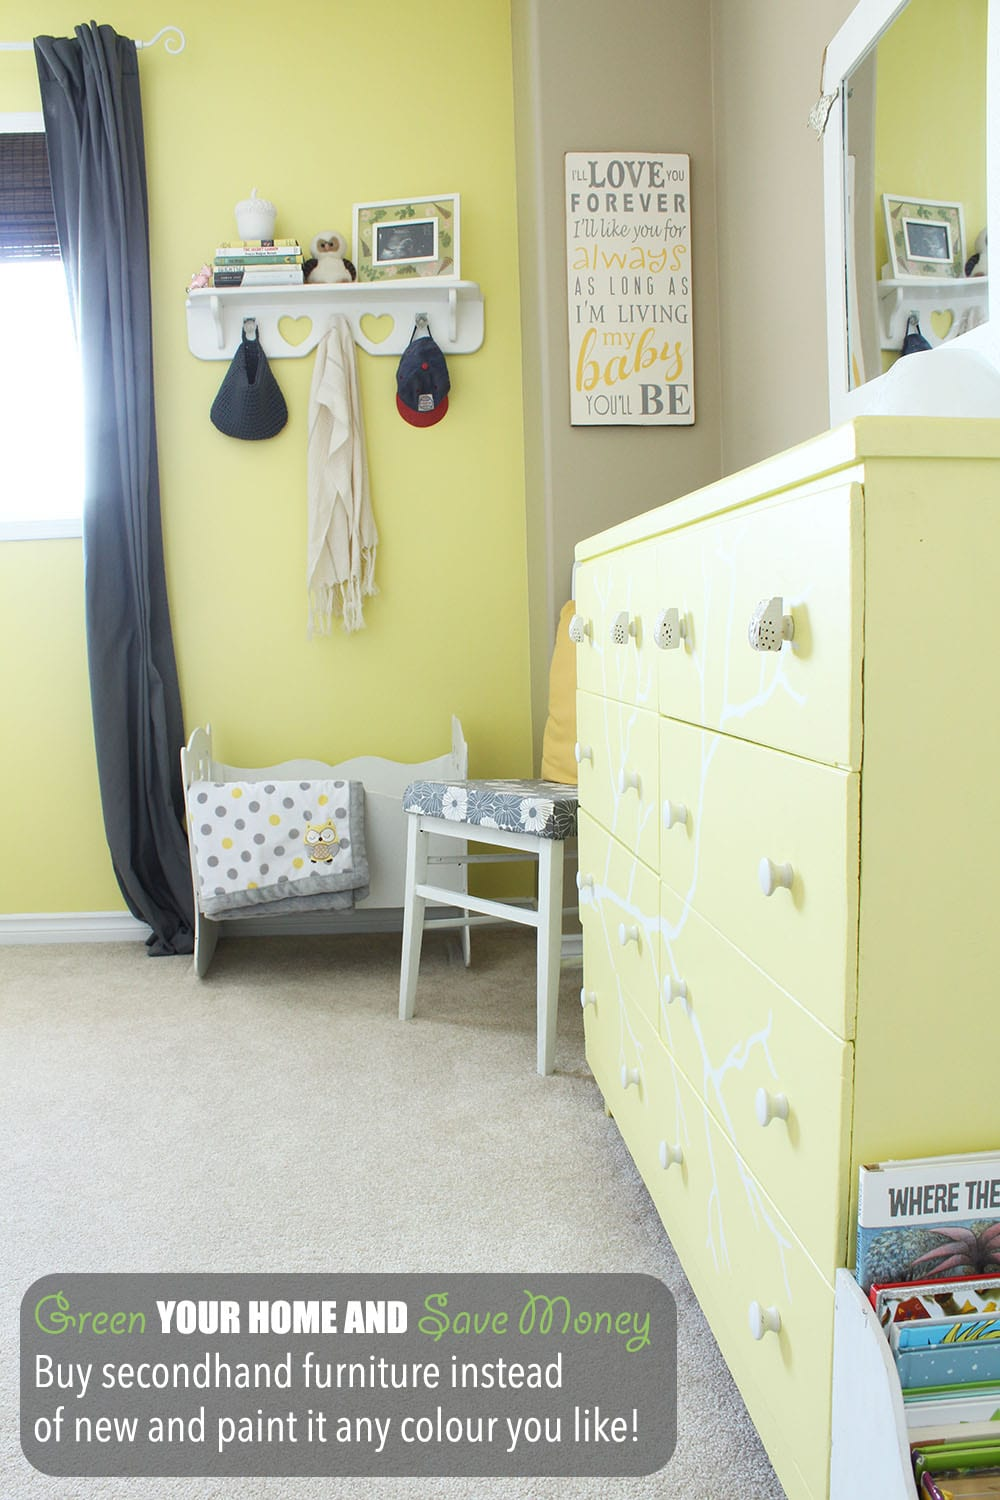 Green your home and save money by shopping secondhand. Plus, secondhand furniture can be painted any colour you like and has that oh-so-popular vintage charm.